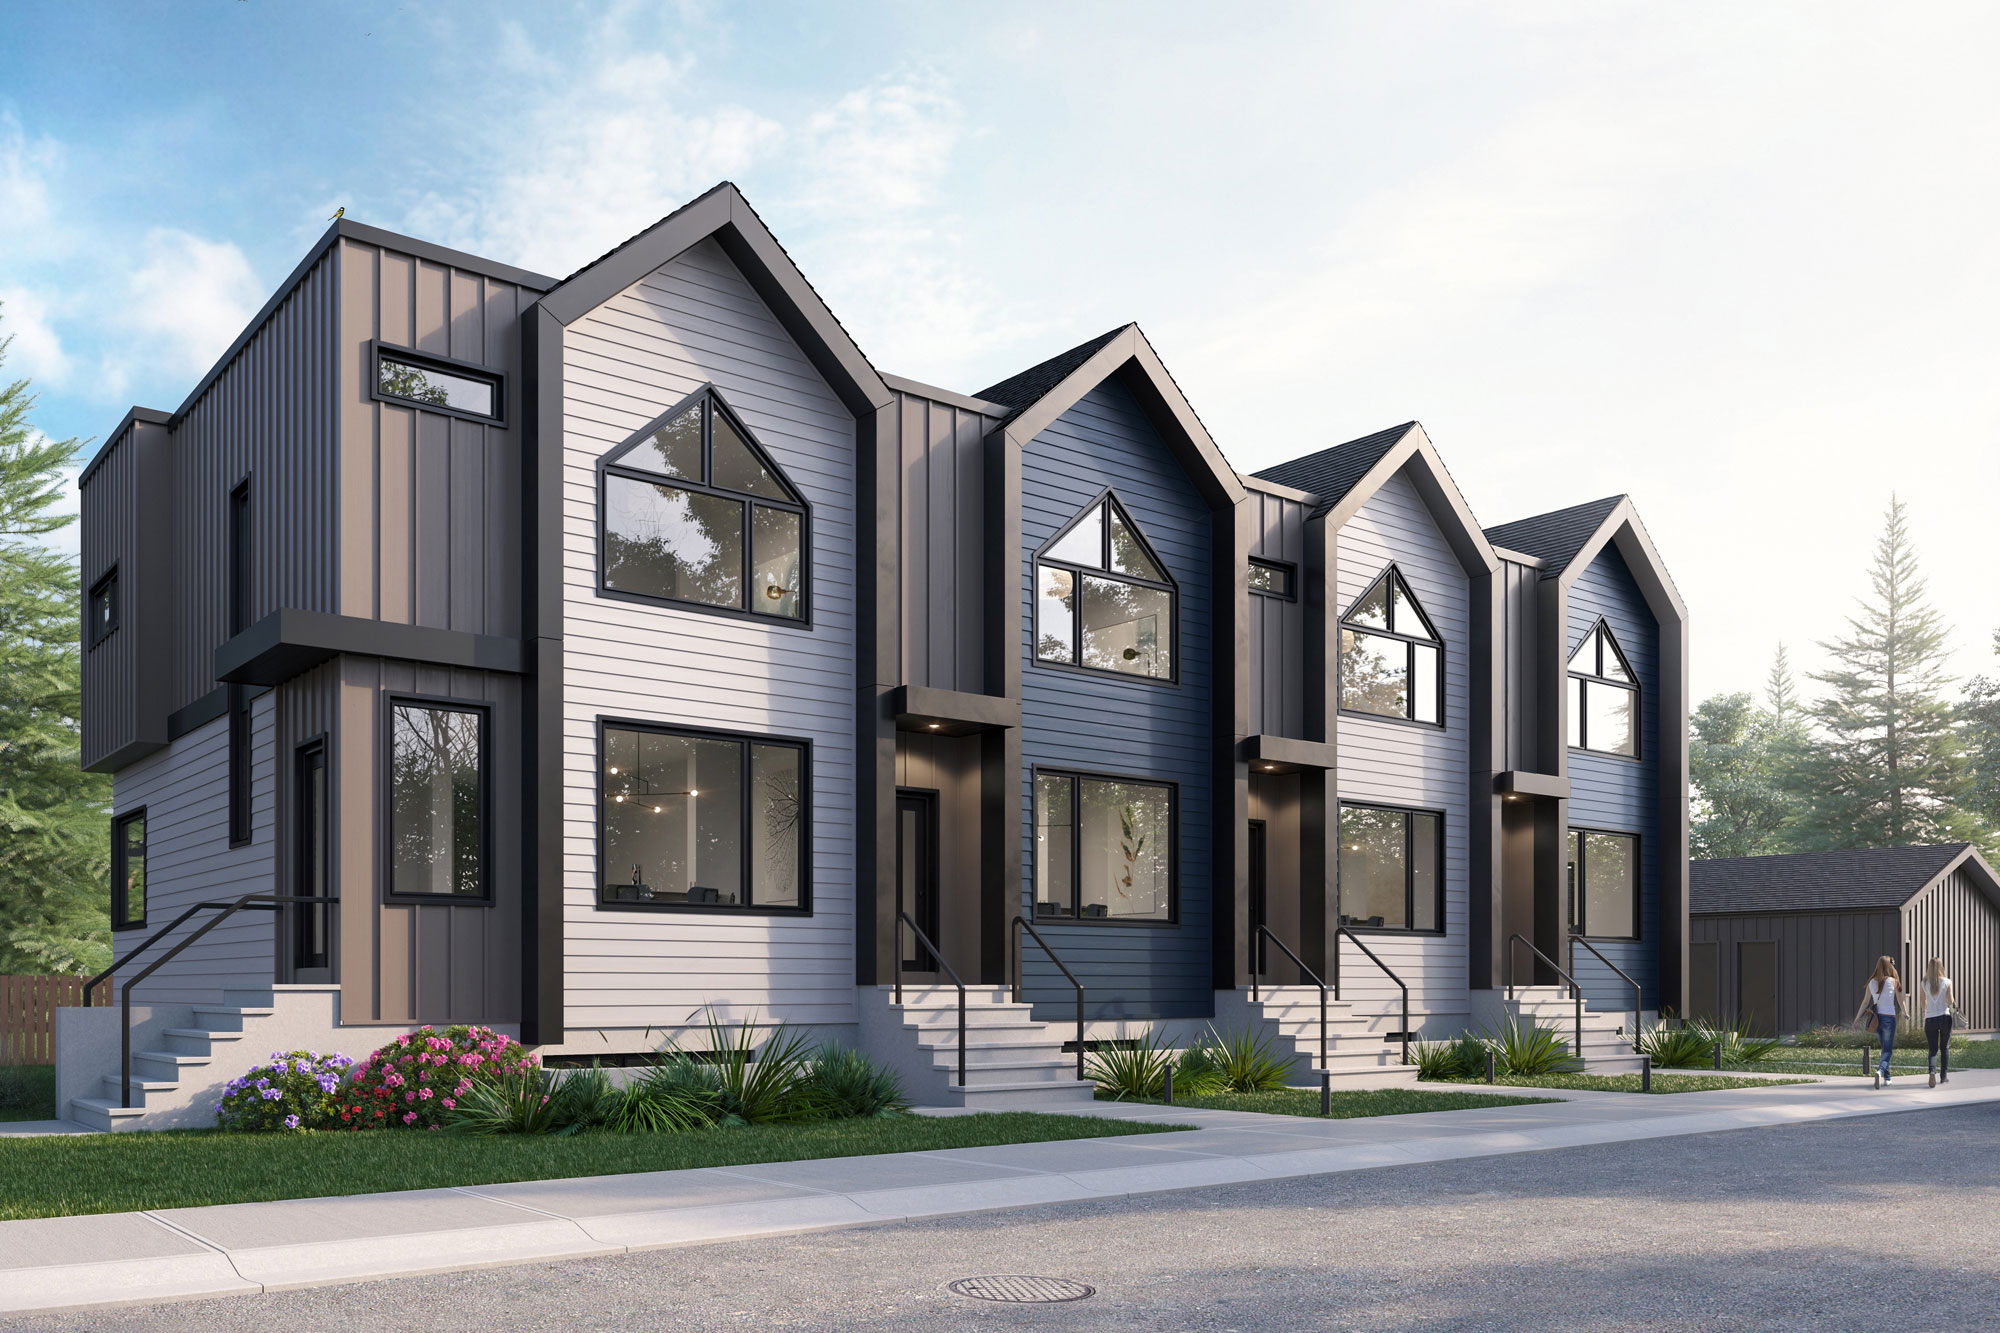 EQRES-99-Ave-Rendering-2000PX-EXTERIOR